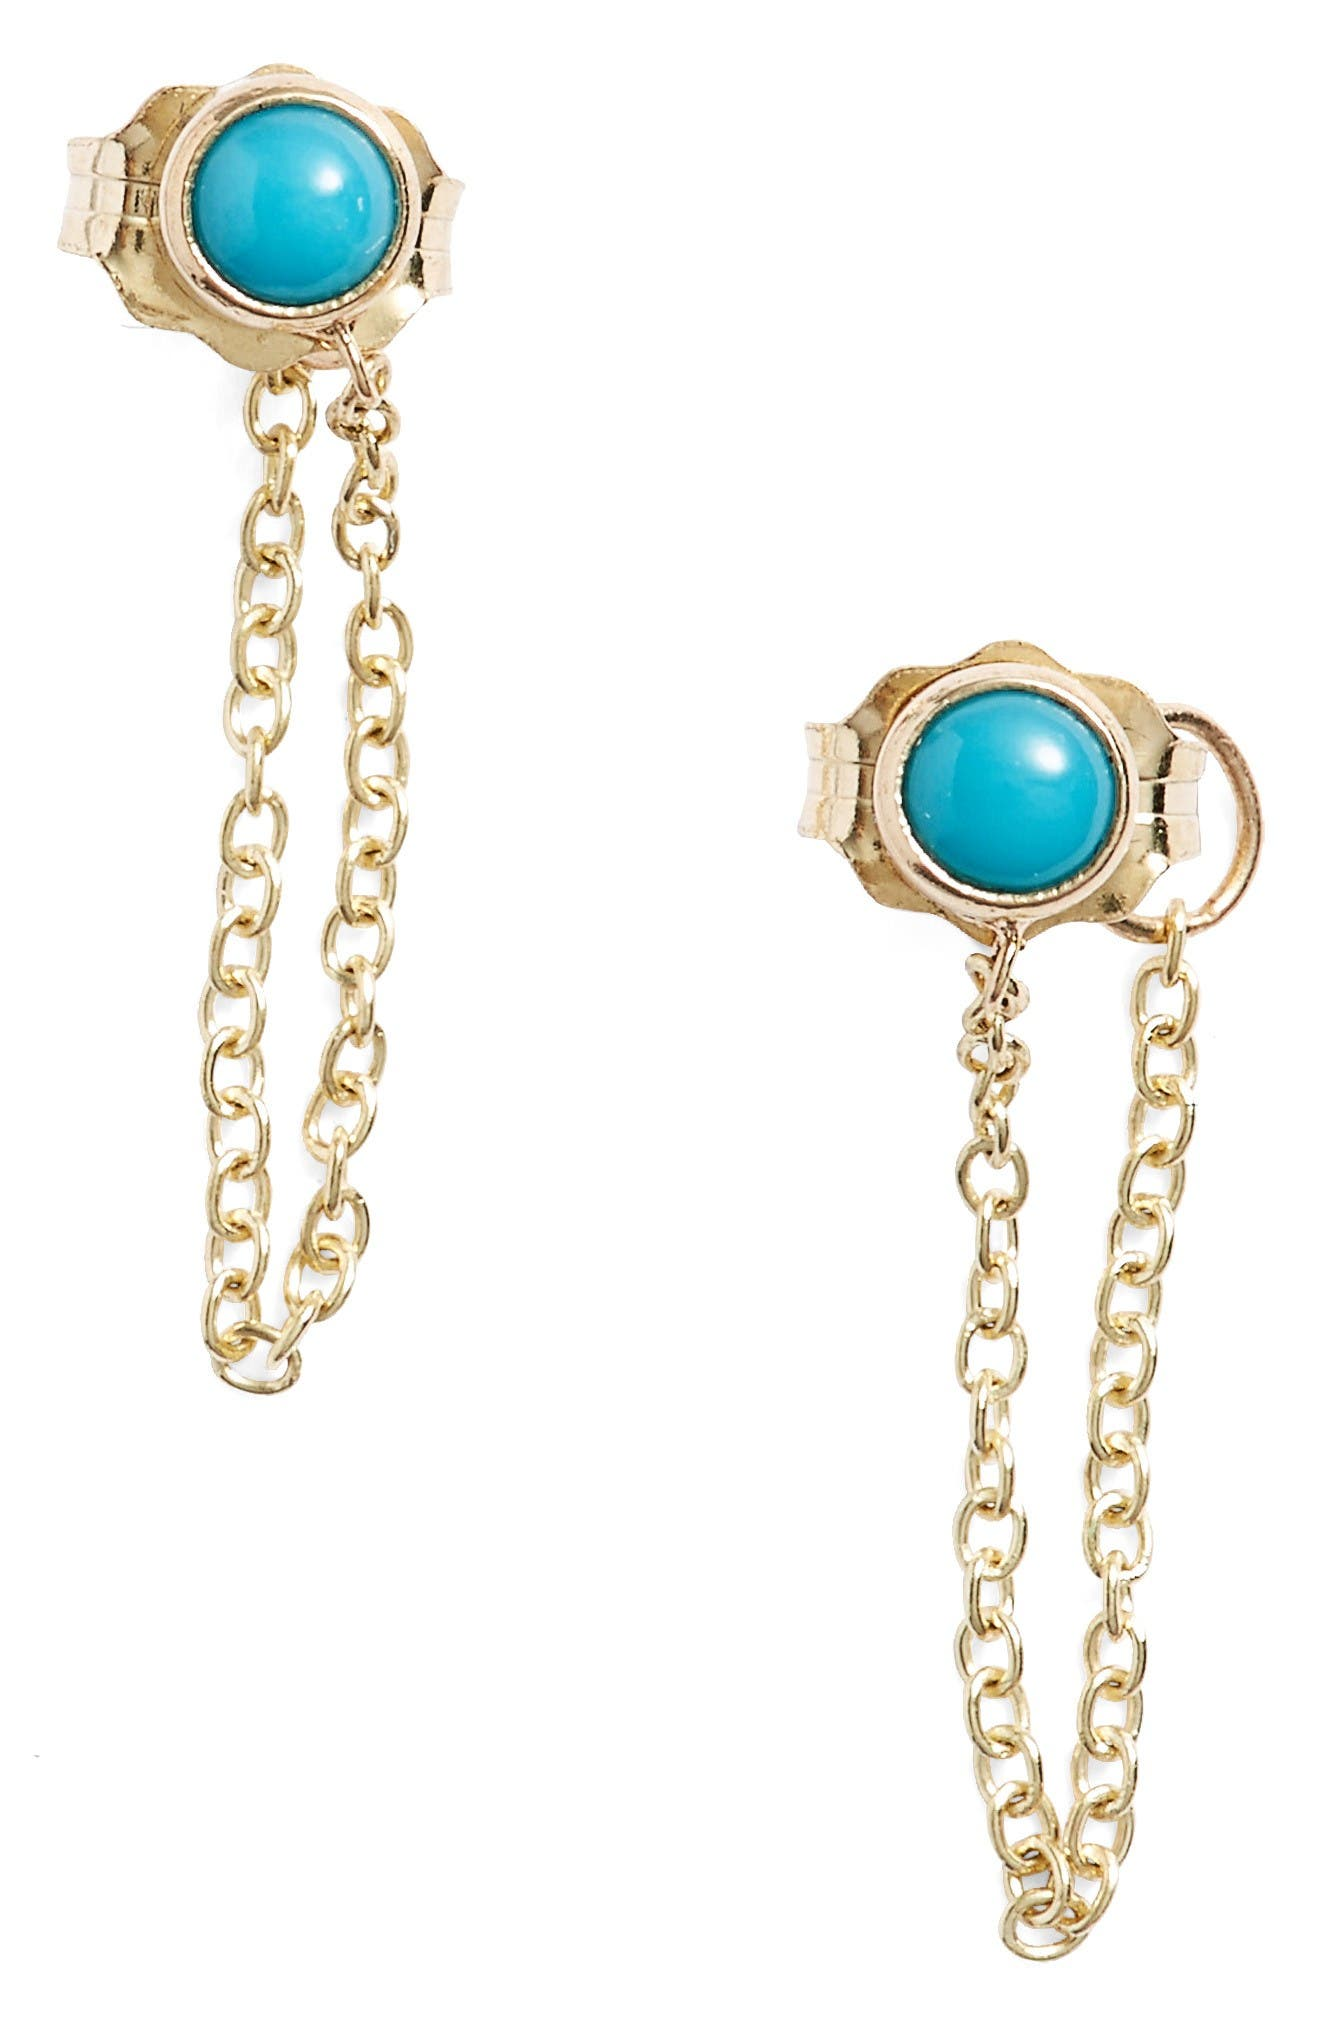 ZOË CHICCO Turquoise Chain Earrings